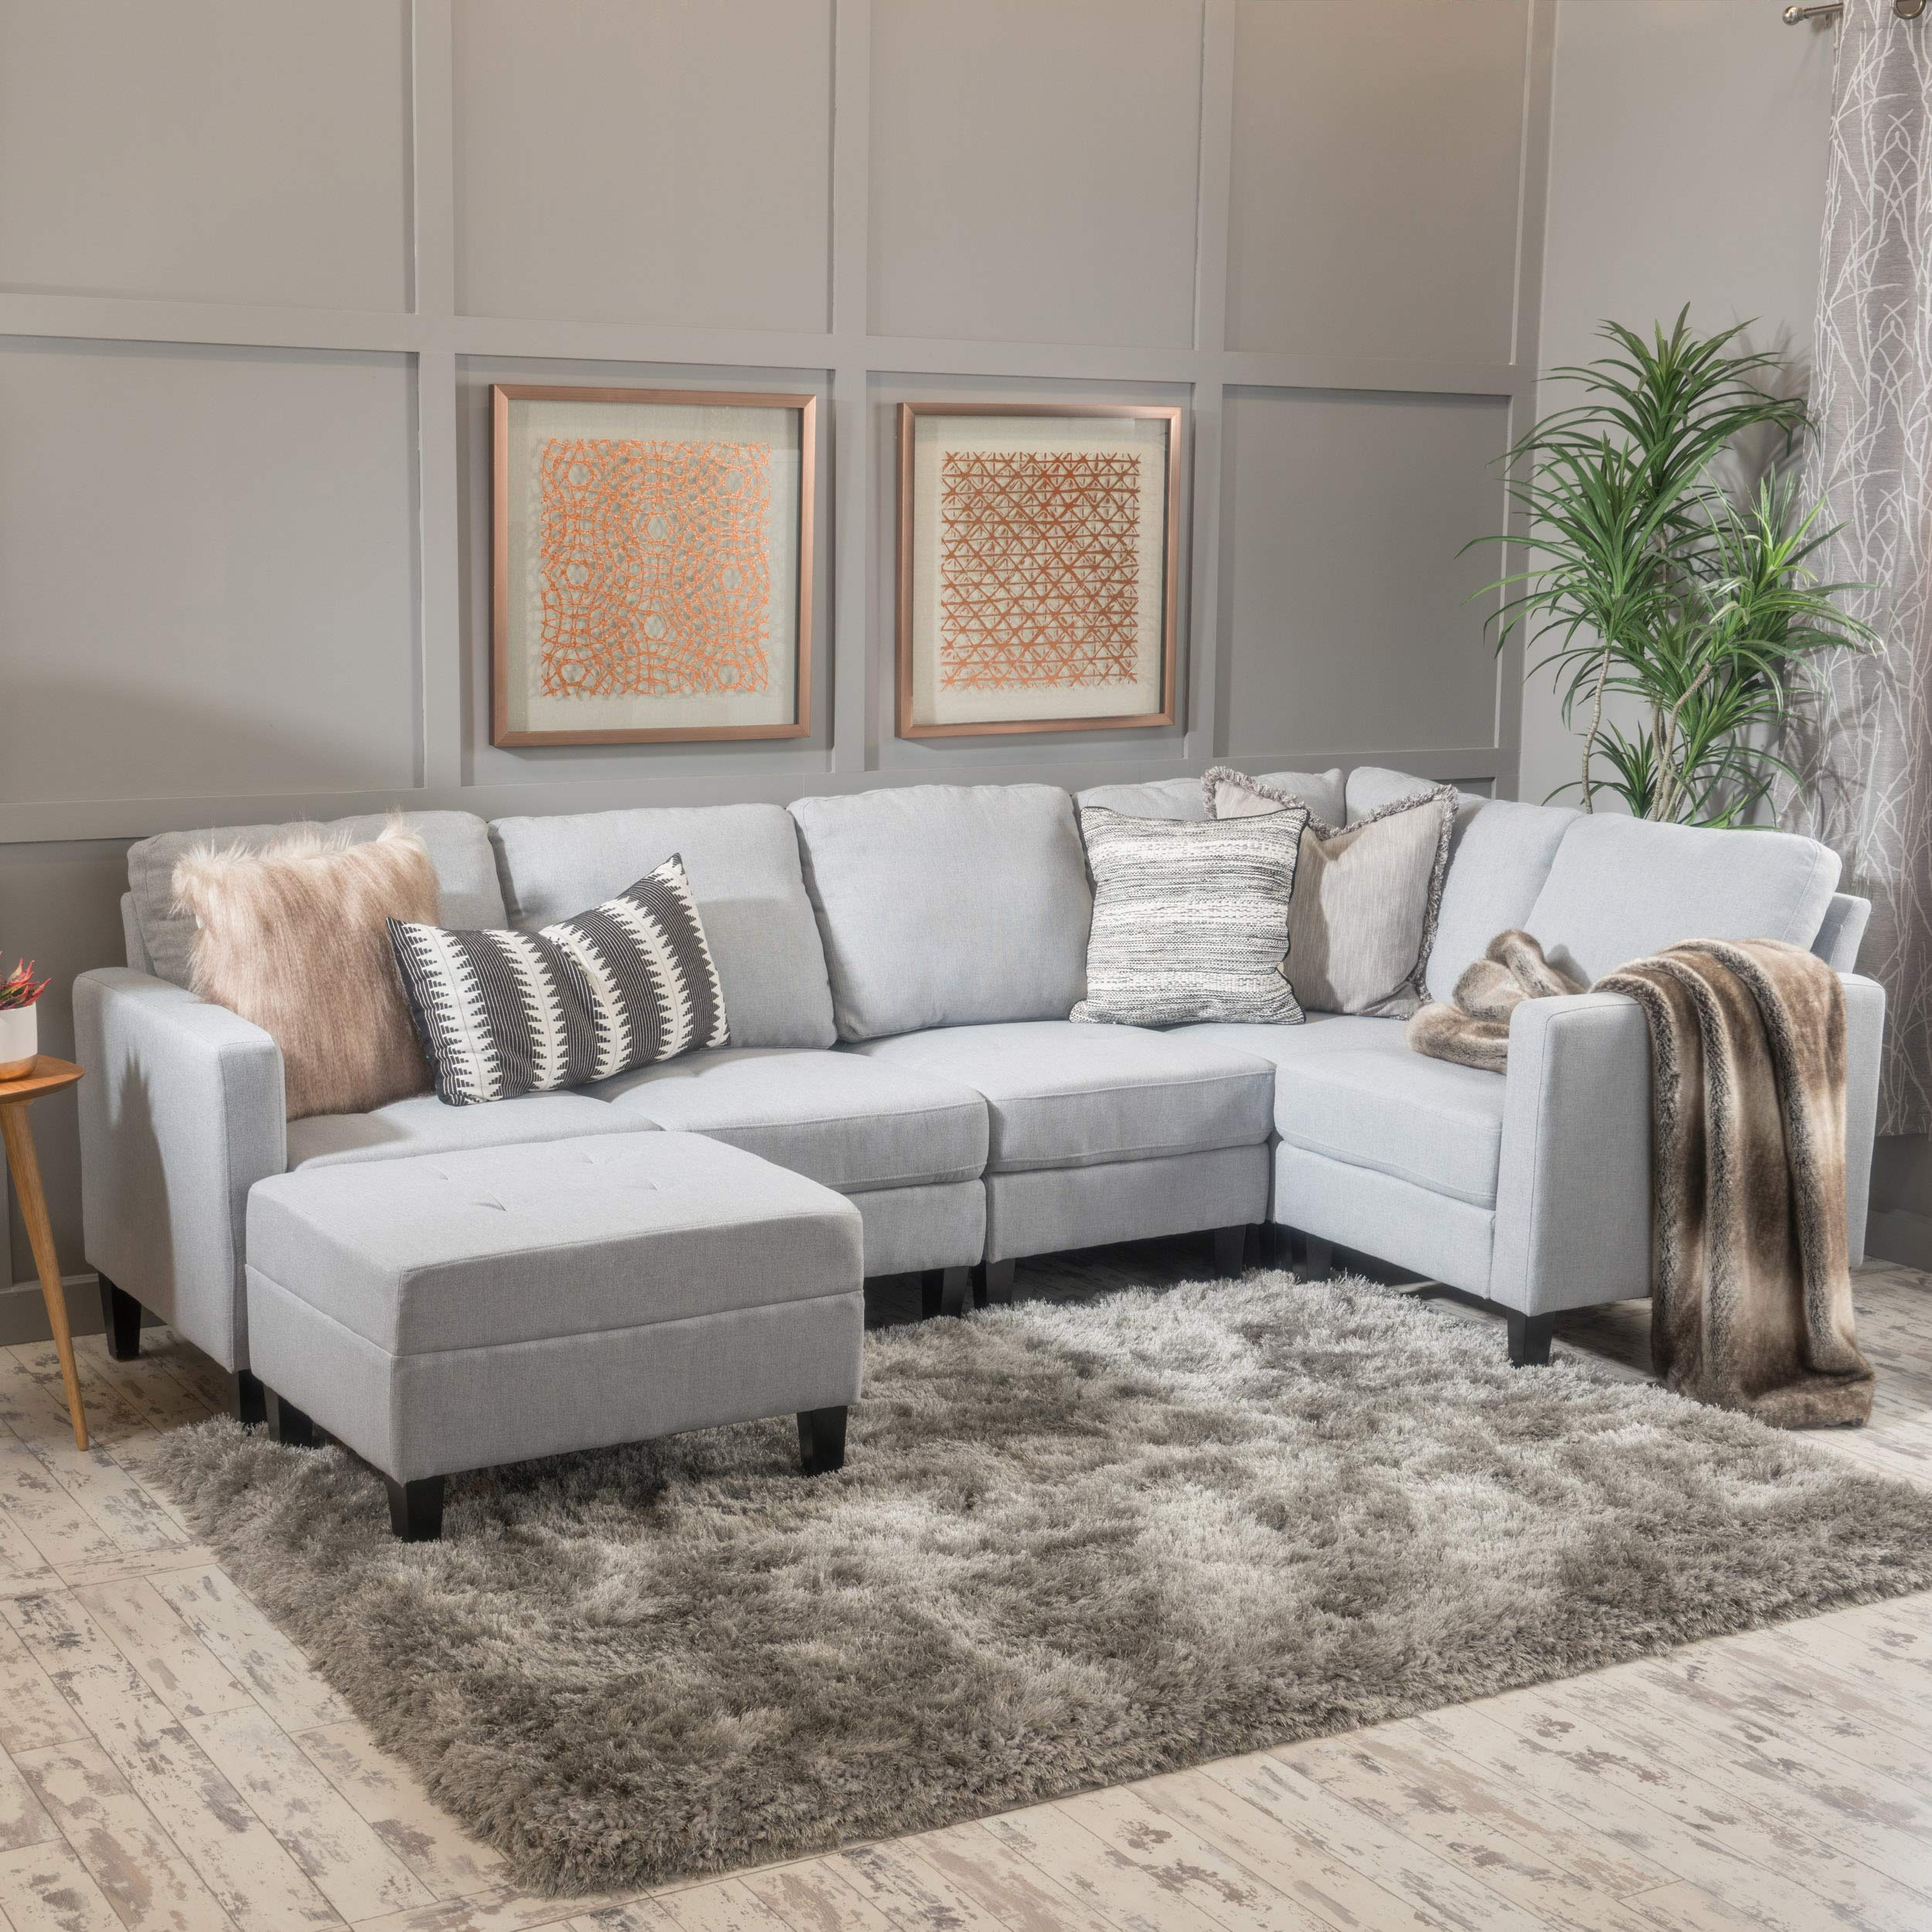 GDF Studio 300128 Bridger Light Grey Fabric Sectional Couch with Ottoman by GDF Studio